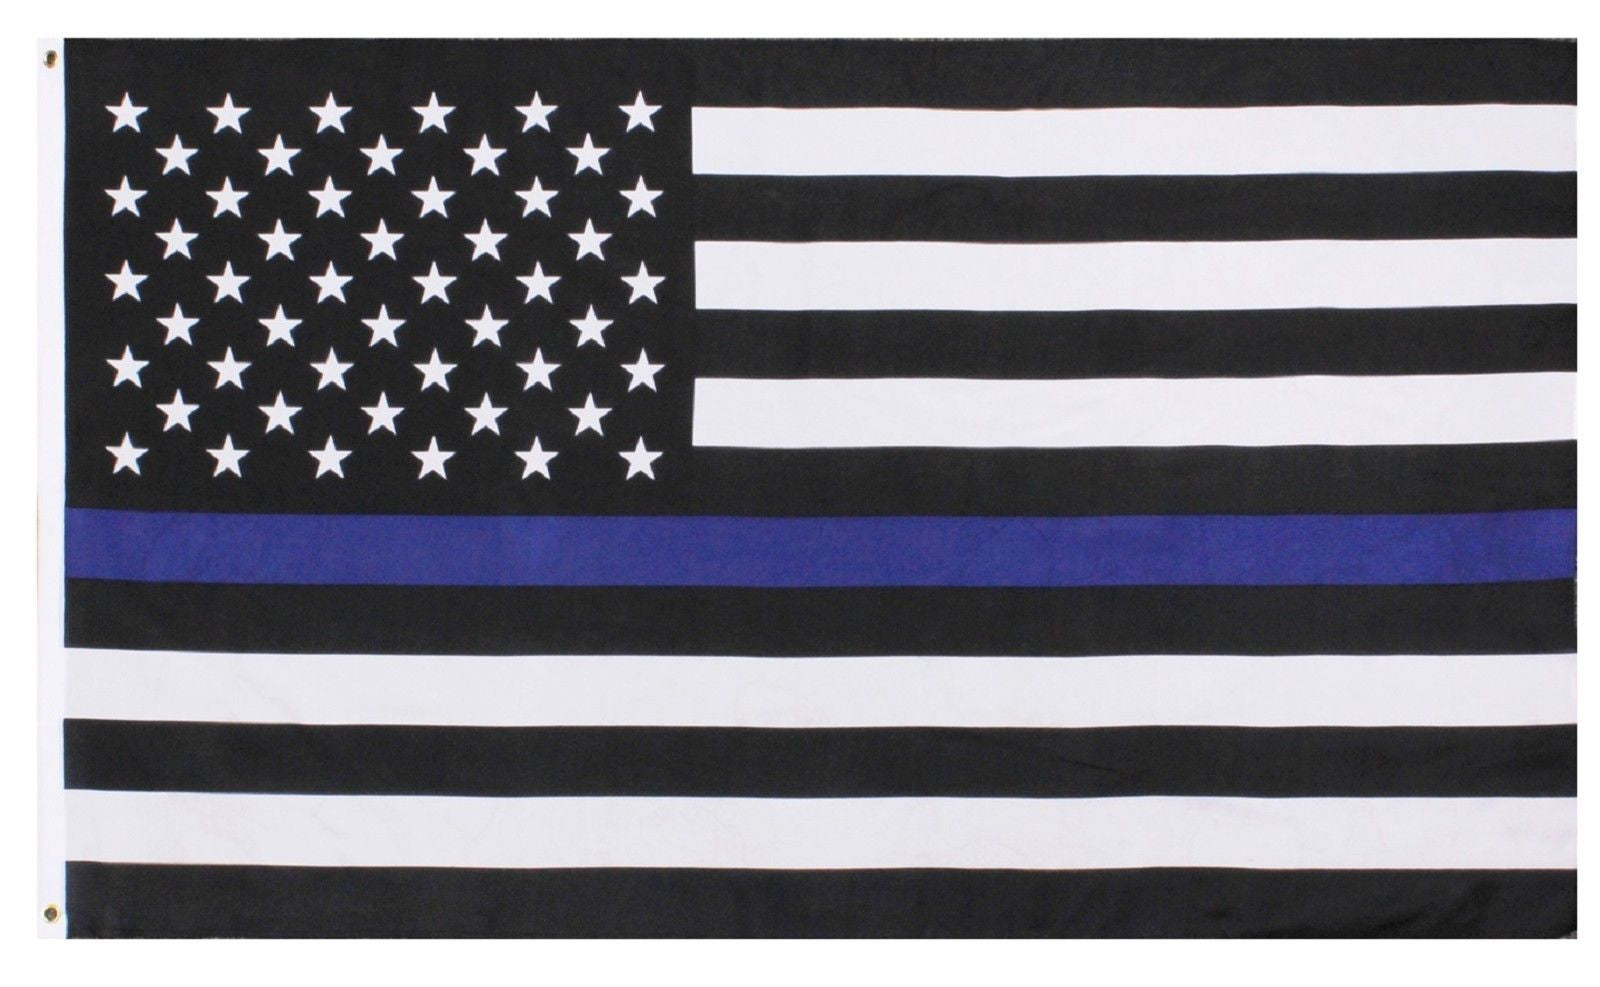 The Thin Blue Line Police Support Decorative USA Flag -Rothco 5 Foot Police  Flag 931f4a59fc7